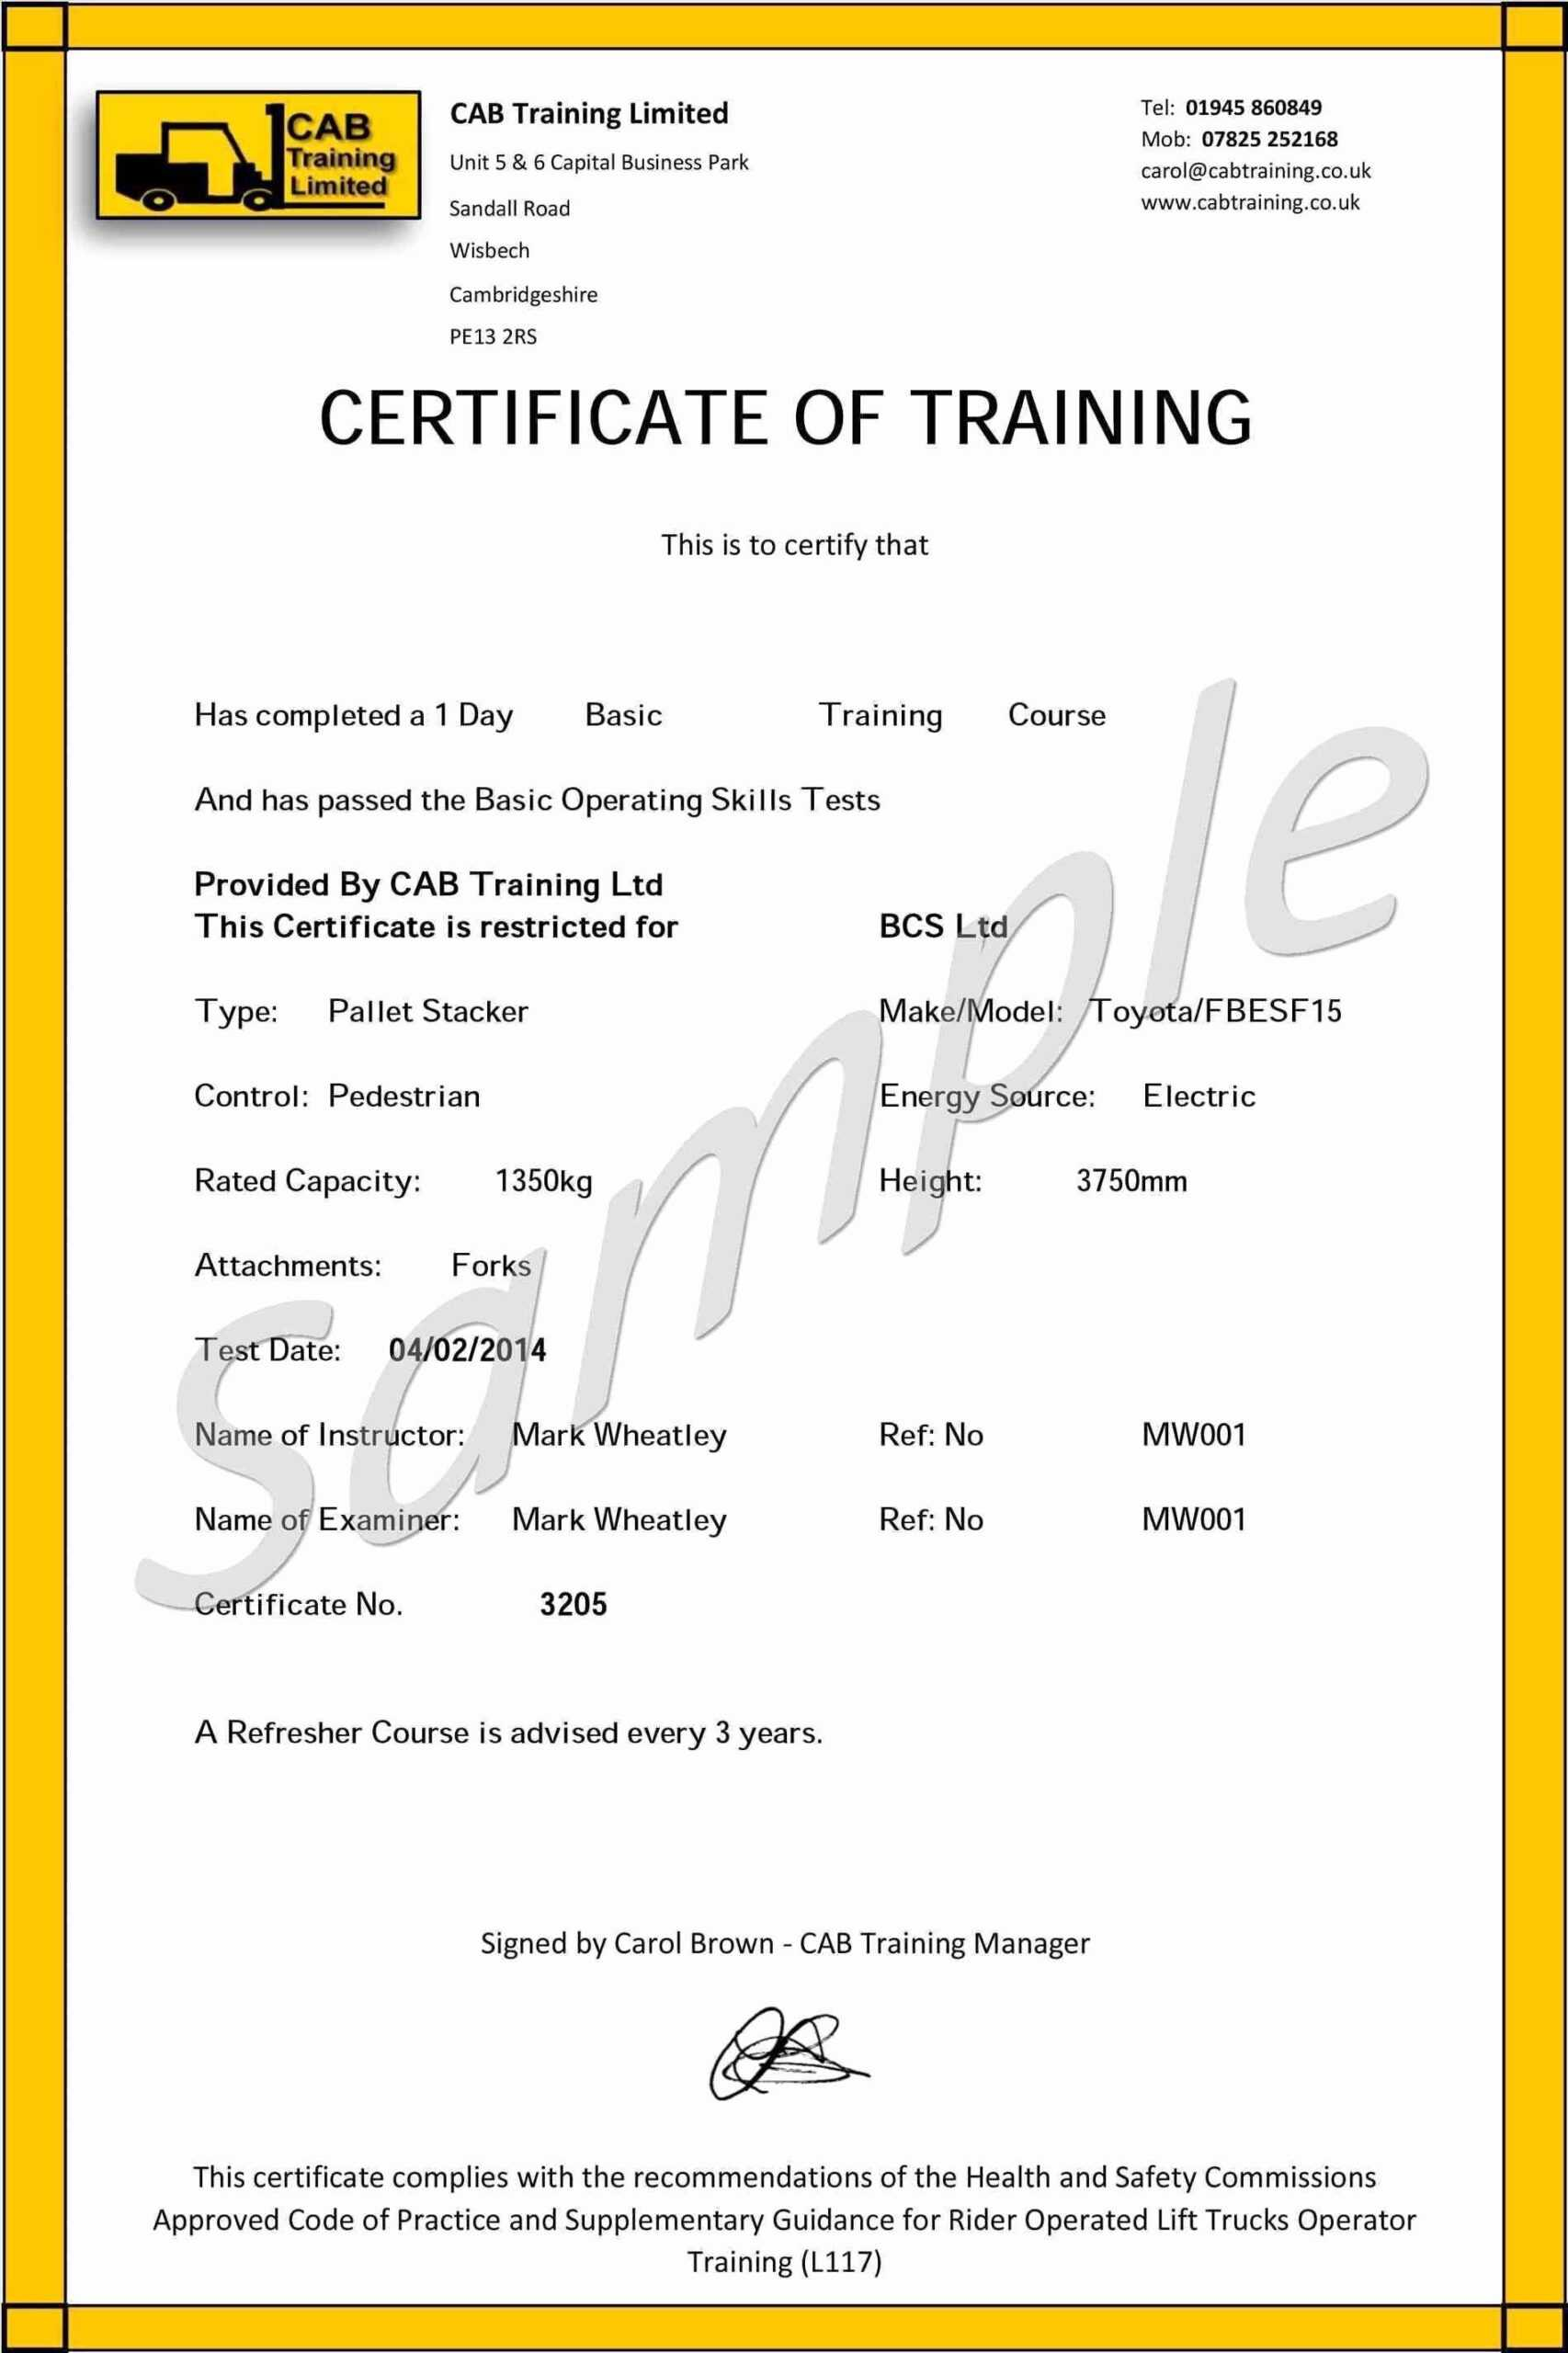 Forklift Operator Card Template - Carlynstudio Within Forklift Certification Card Template